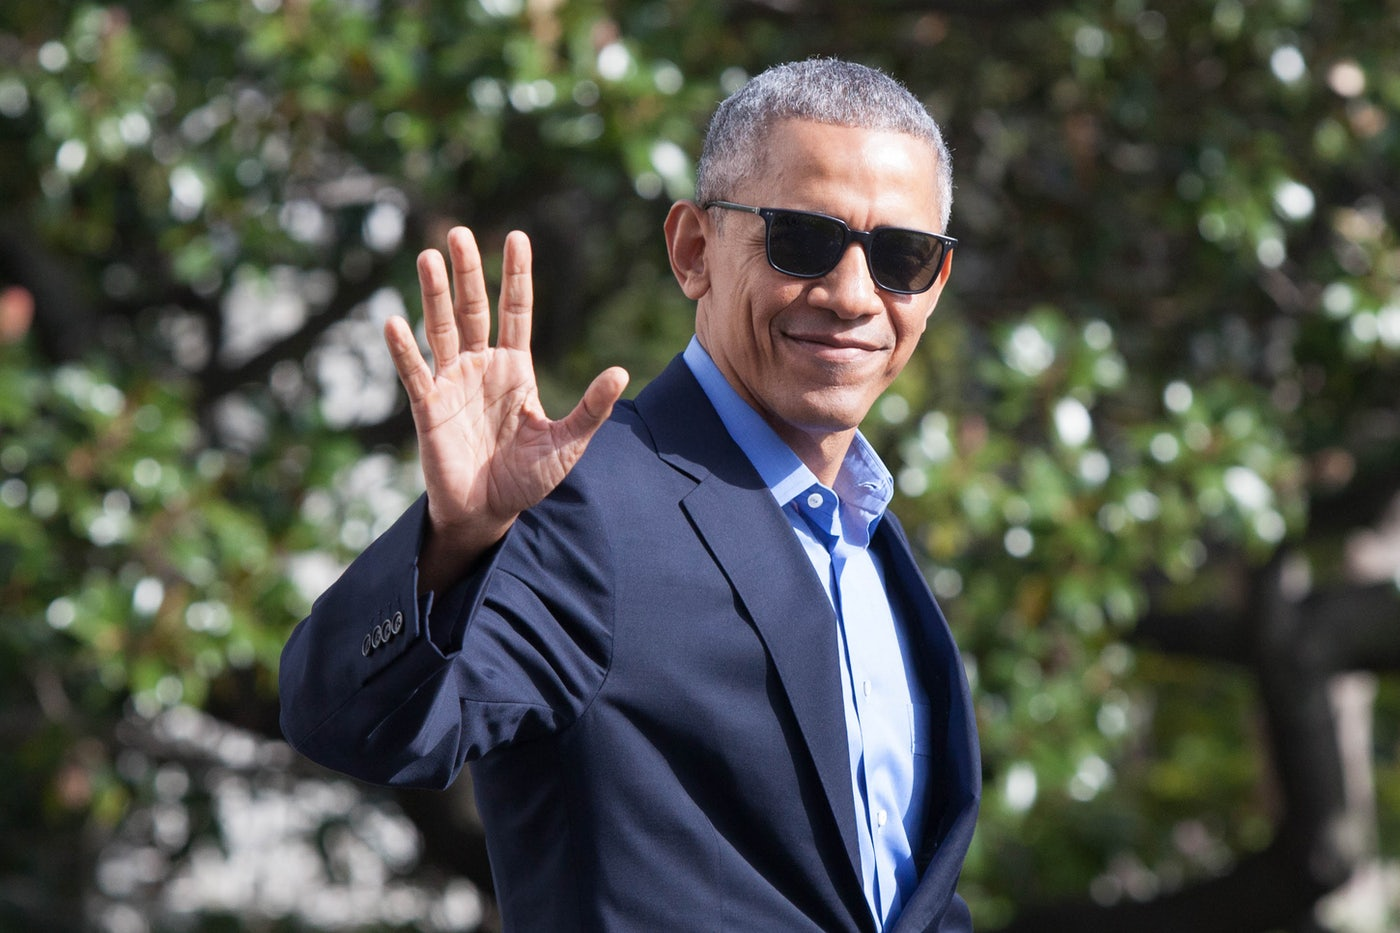 Former President Barack Obama waves.